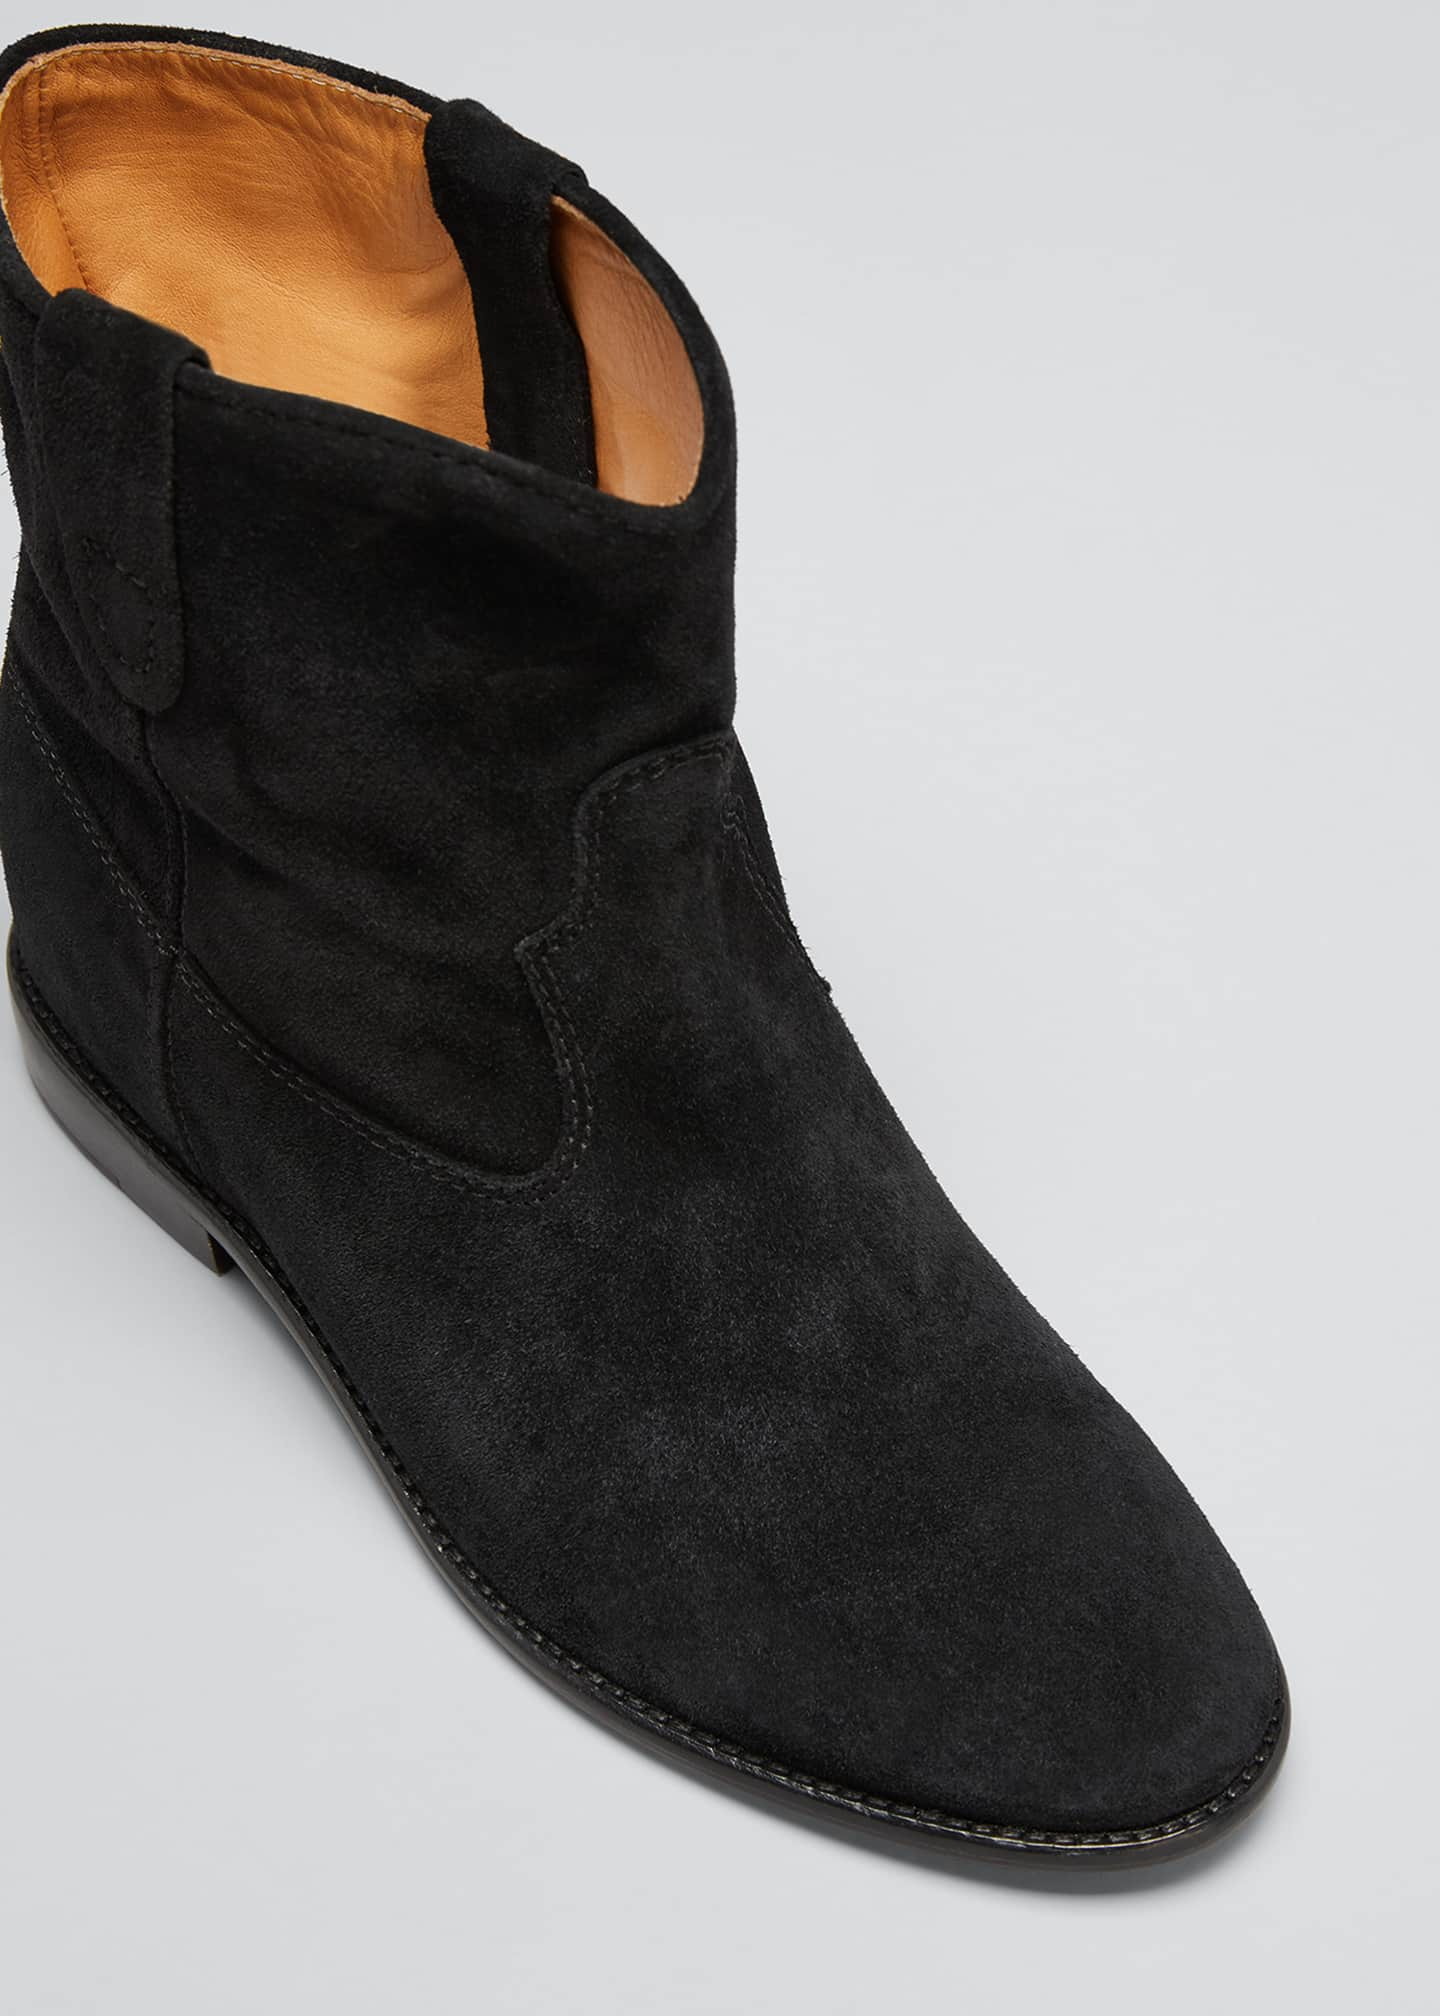 Image 5 of 5: Crisi Western Suede Flat Booties